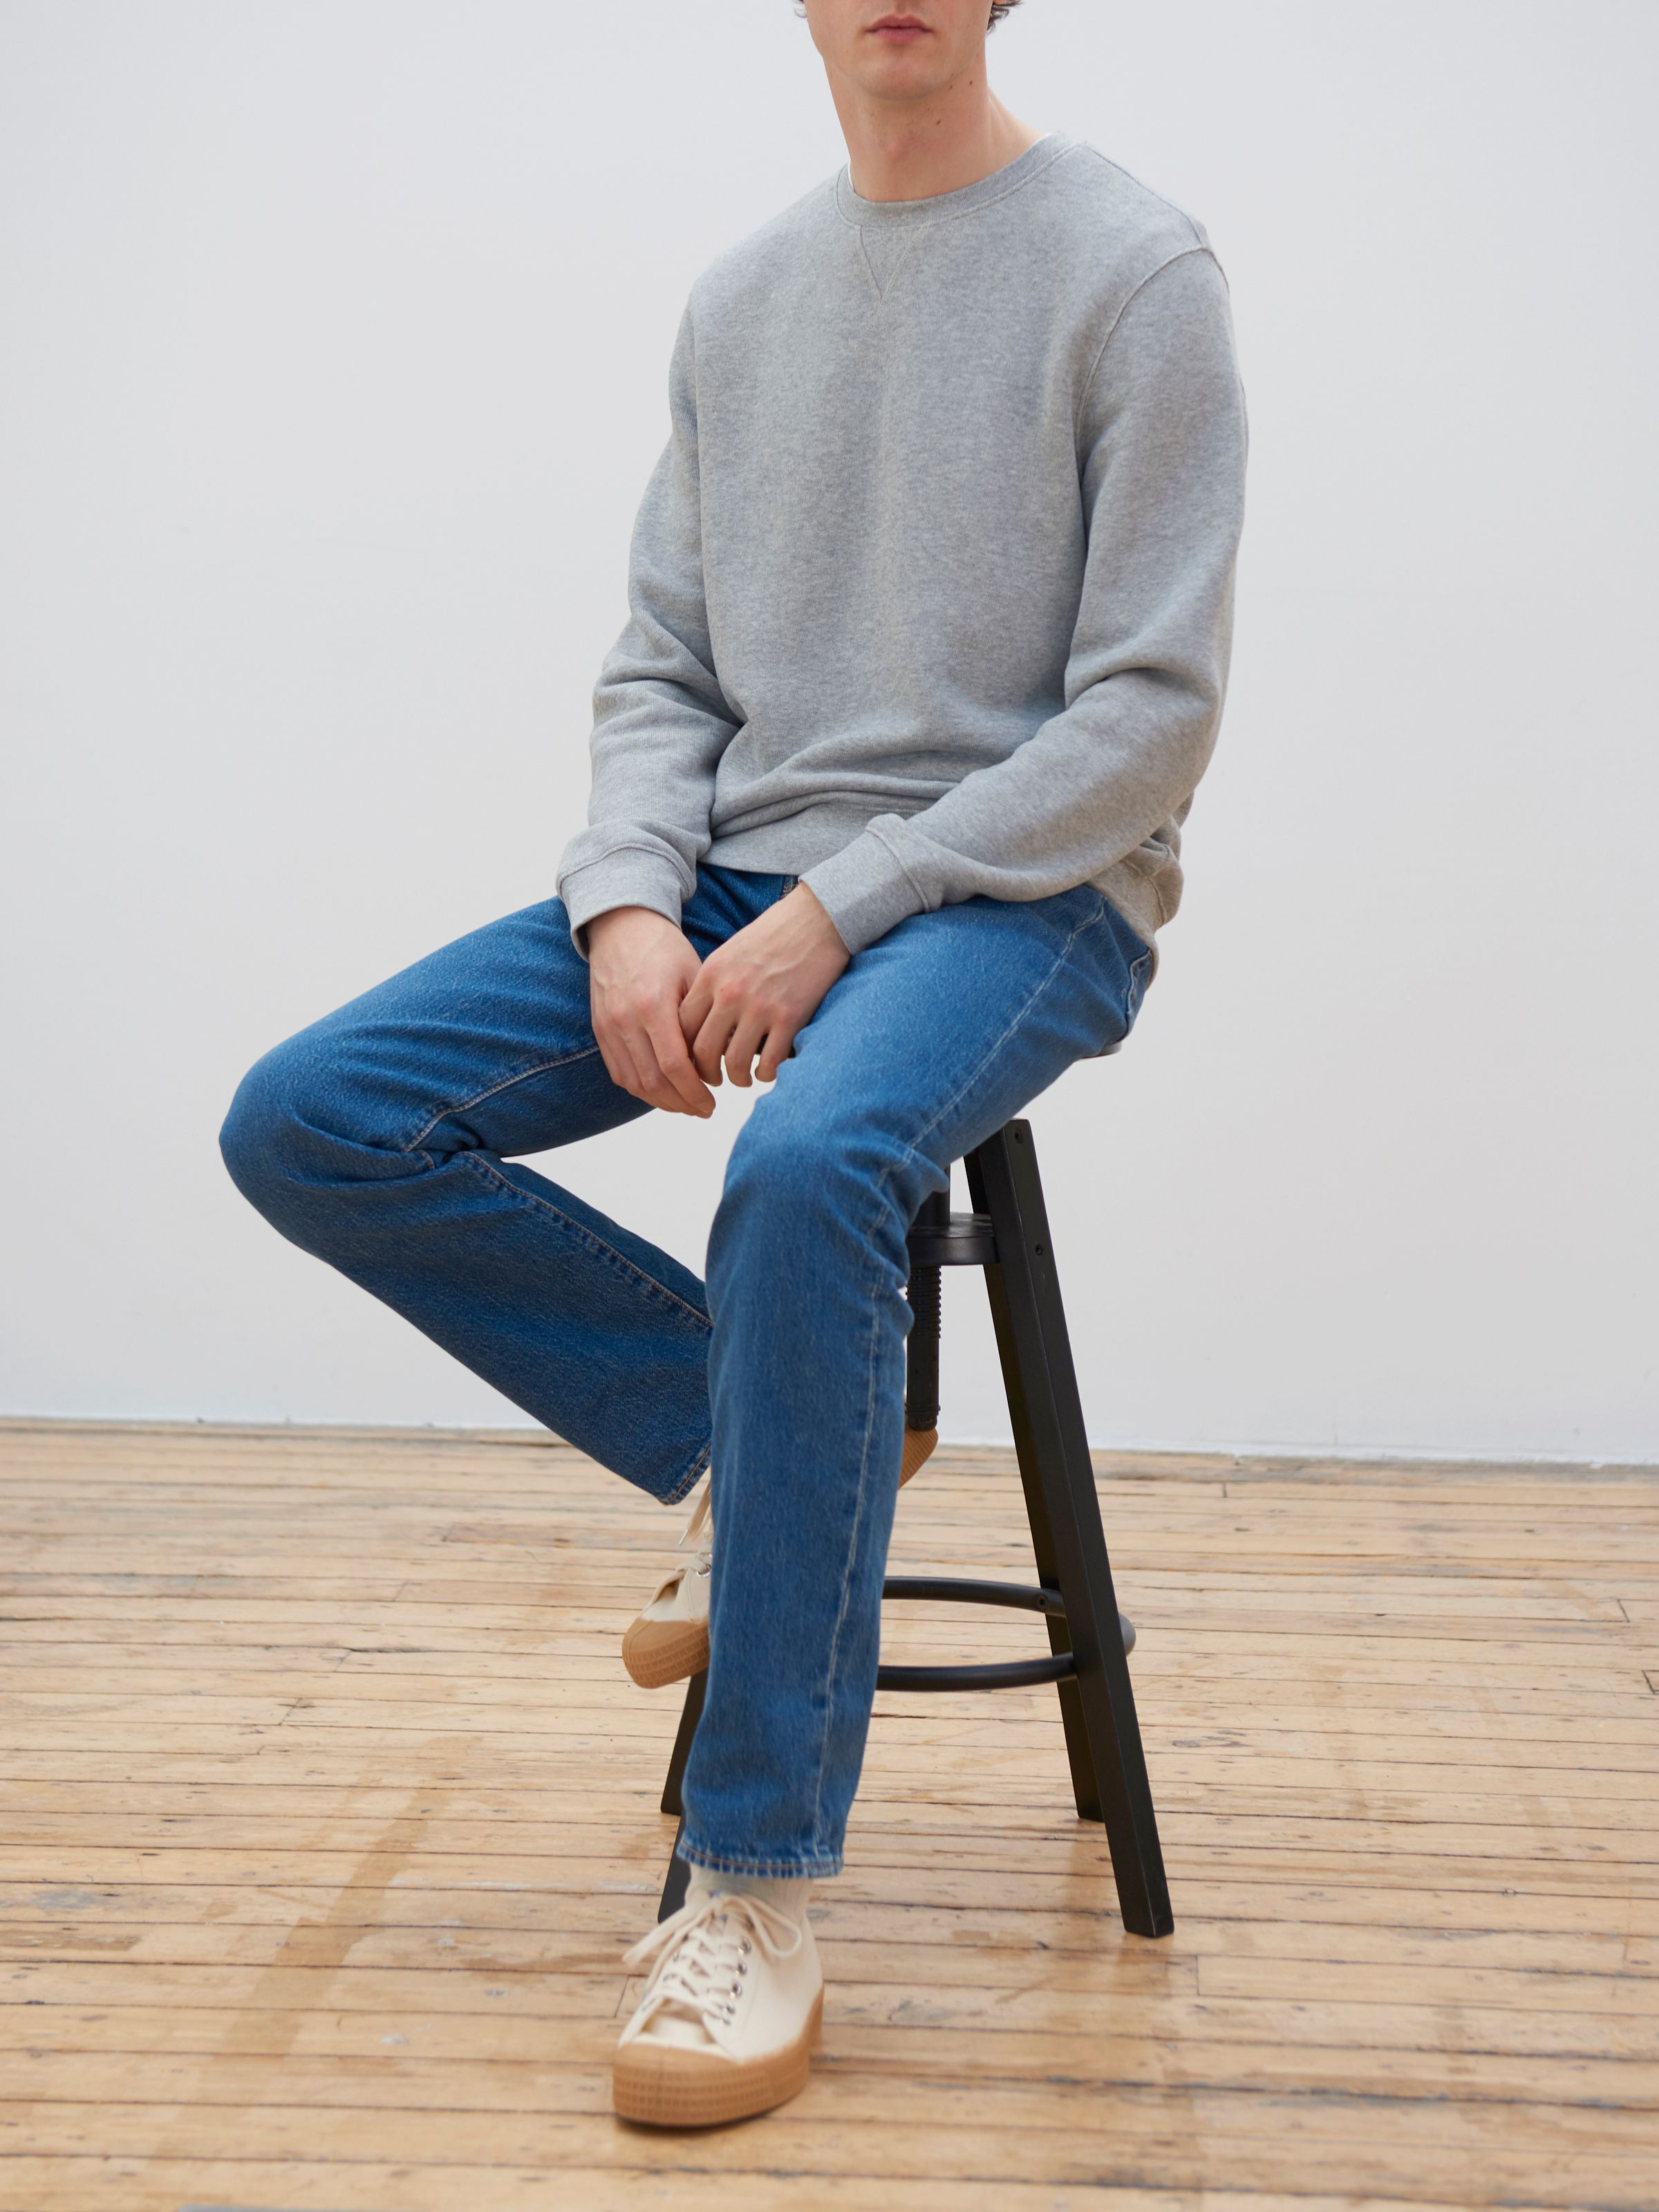 Men's outfit idea for 2021 with gray sweatshirt, mid blue jeans, white sneakers. Suitable for spring, summer and fall.